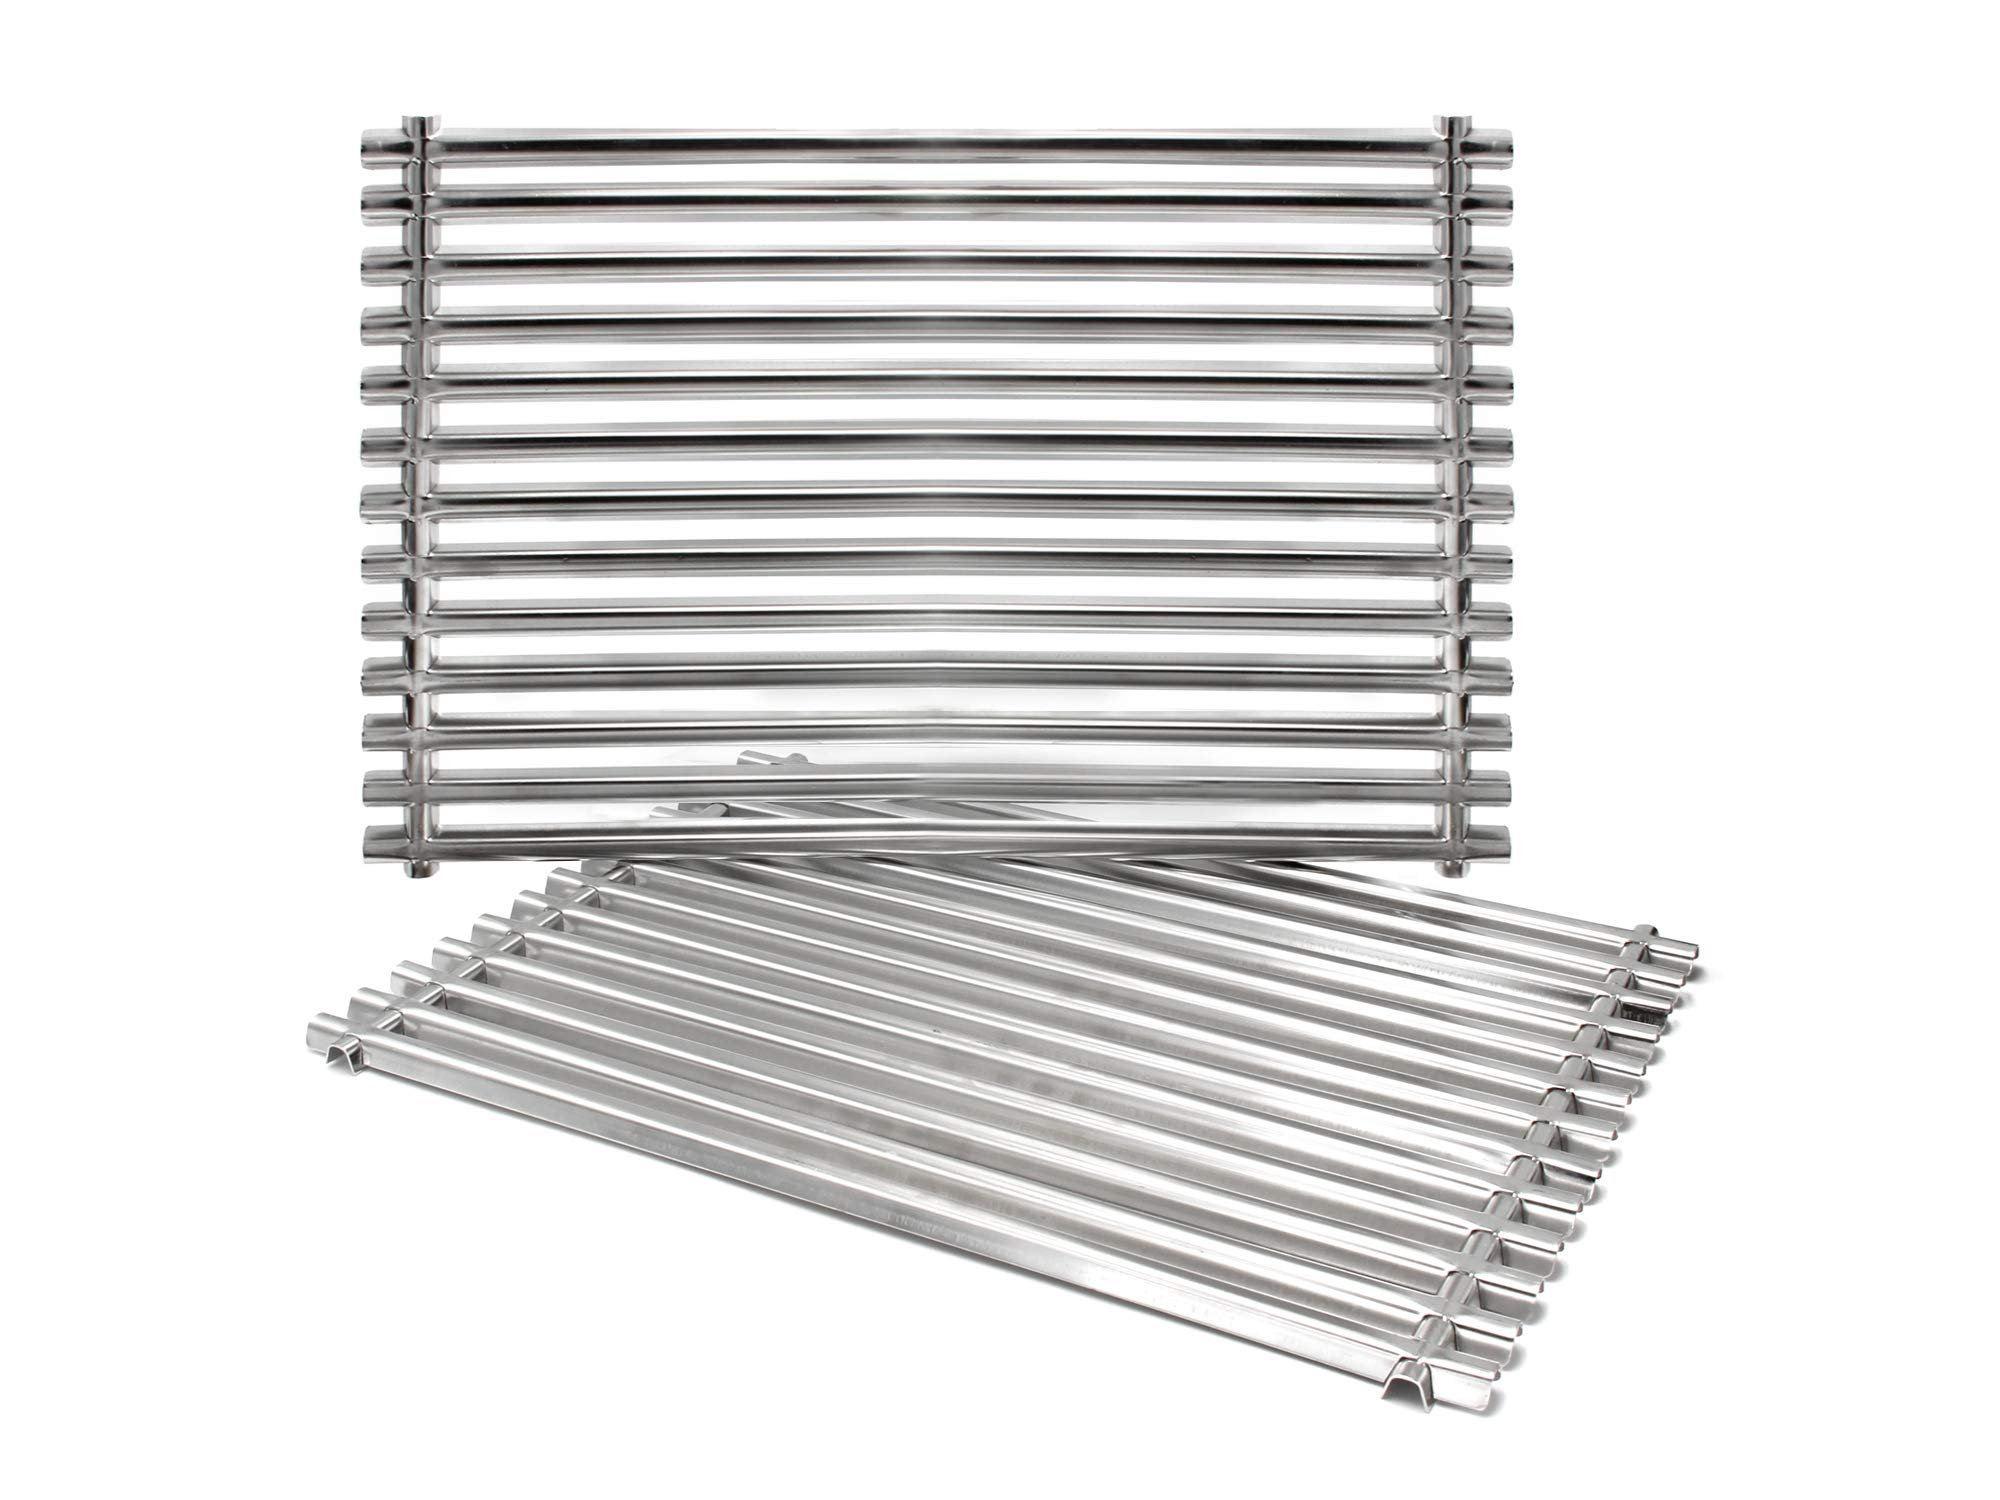 Hongso 7521 7522 15'' 304 Stainless Steel Cooking Grid Grates for Weber Old Spirit E-210 Spirit S 200 Series (with Side-Mounted Control Panels) Genesis Silver A Spirit 500 Gas Grills 65905 7523 SCG521 by Hongso